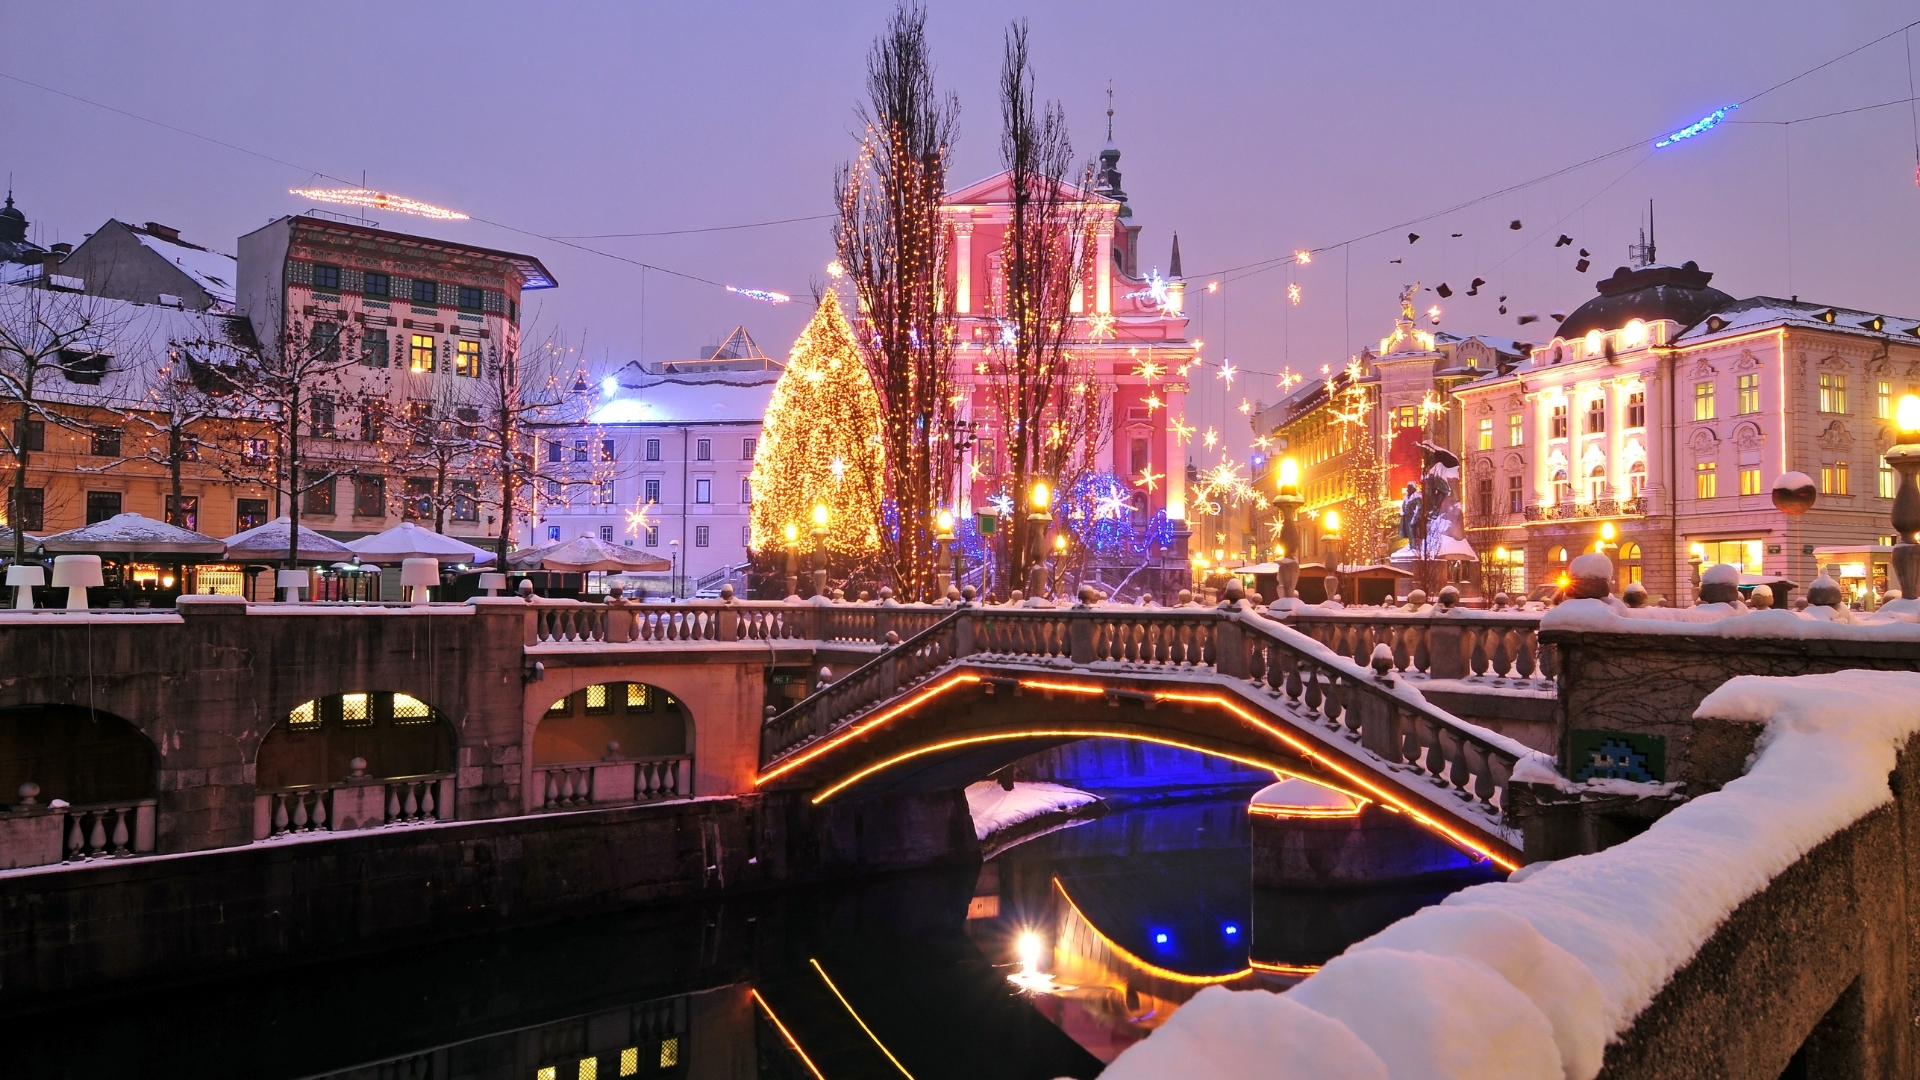 Ljubljana - Winter Spirit